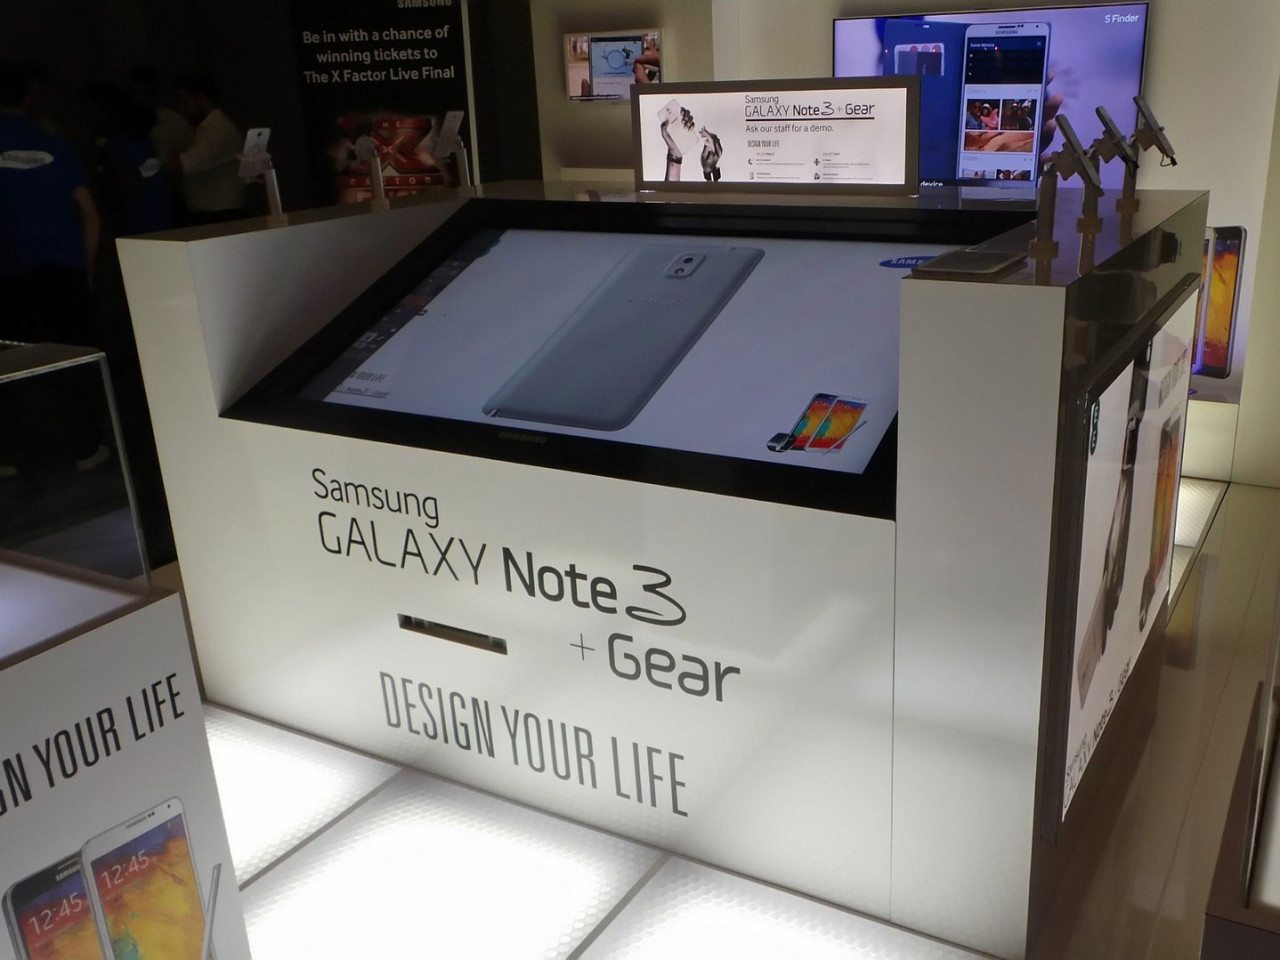 Air Graffiti Touch, Interactive Digital Surface: Set up to allow participants design their own smartphone cover @ a Samsung event